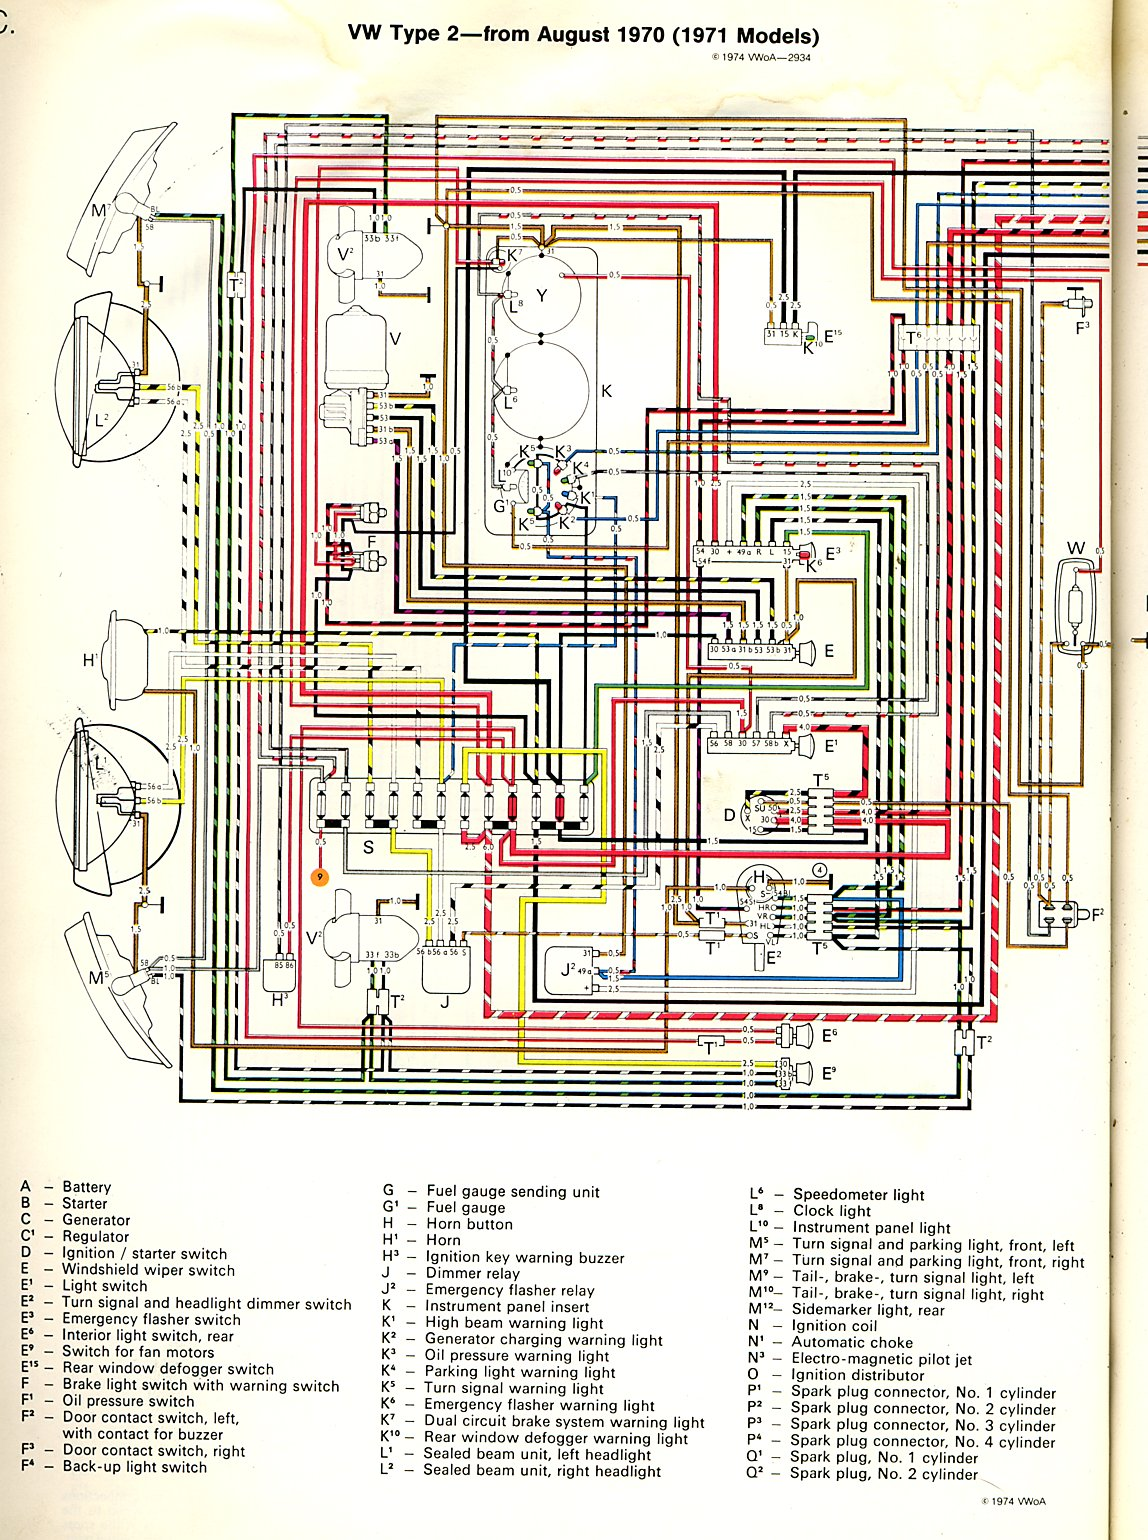 baybus_71a 71 vw bus wiring diagram 1970 vw bus fuse box diagram \u2022 wiring Wiring Harness Diagram at creativeand.co